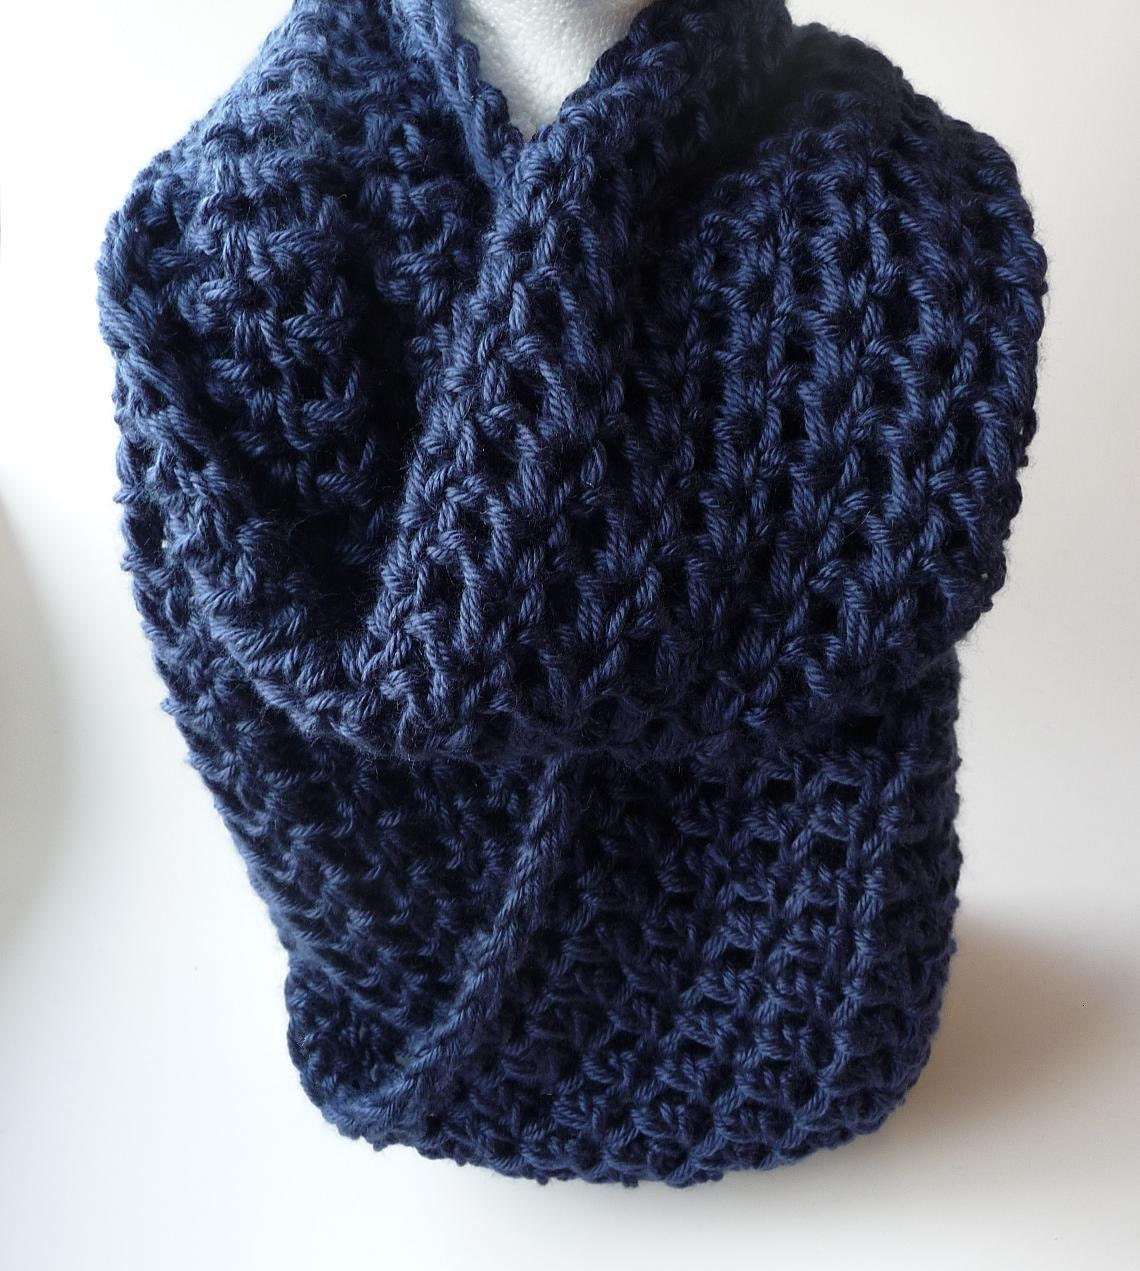 Crochet infinity scarf pattern crochet cowl scarf pattern zoom bankloansurffo Image collections